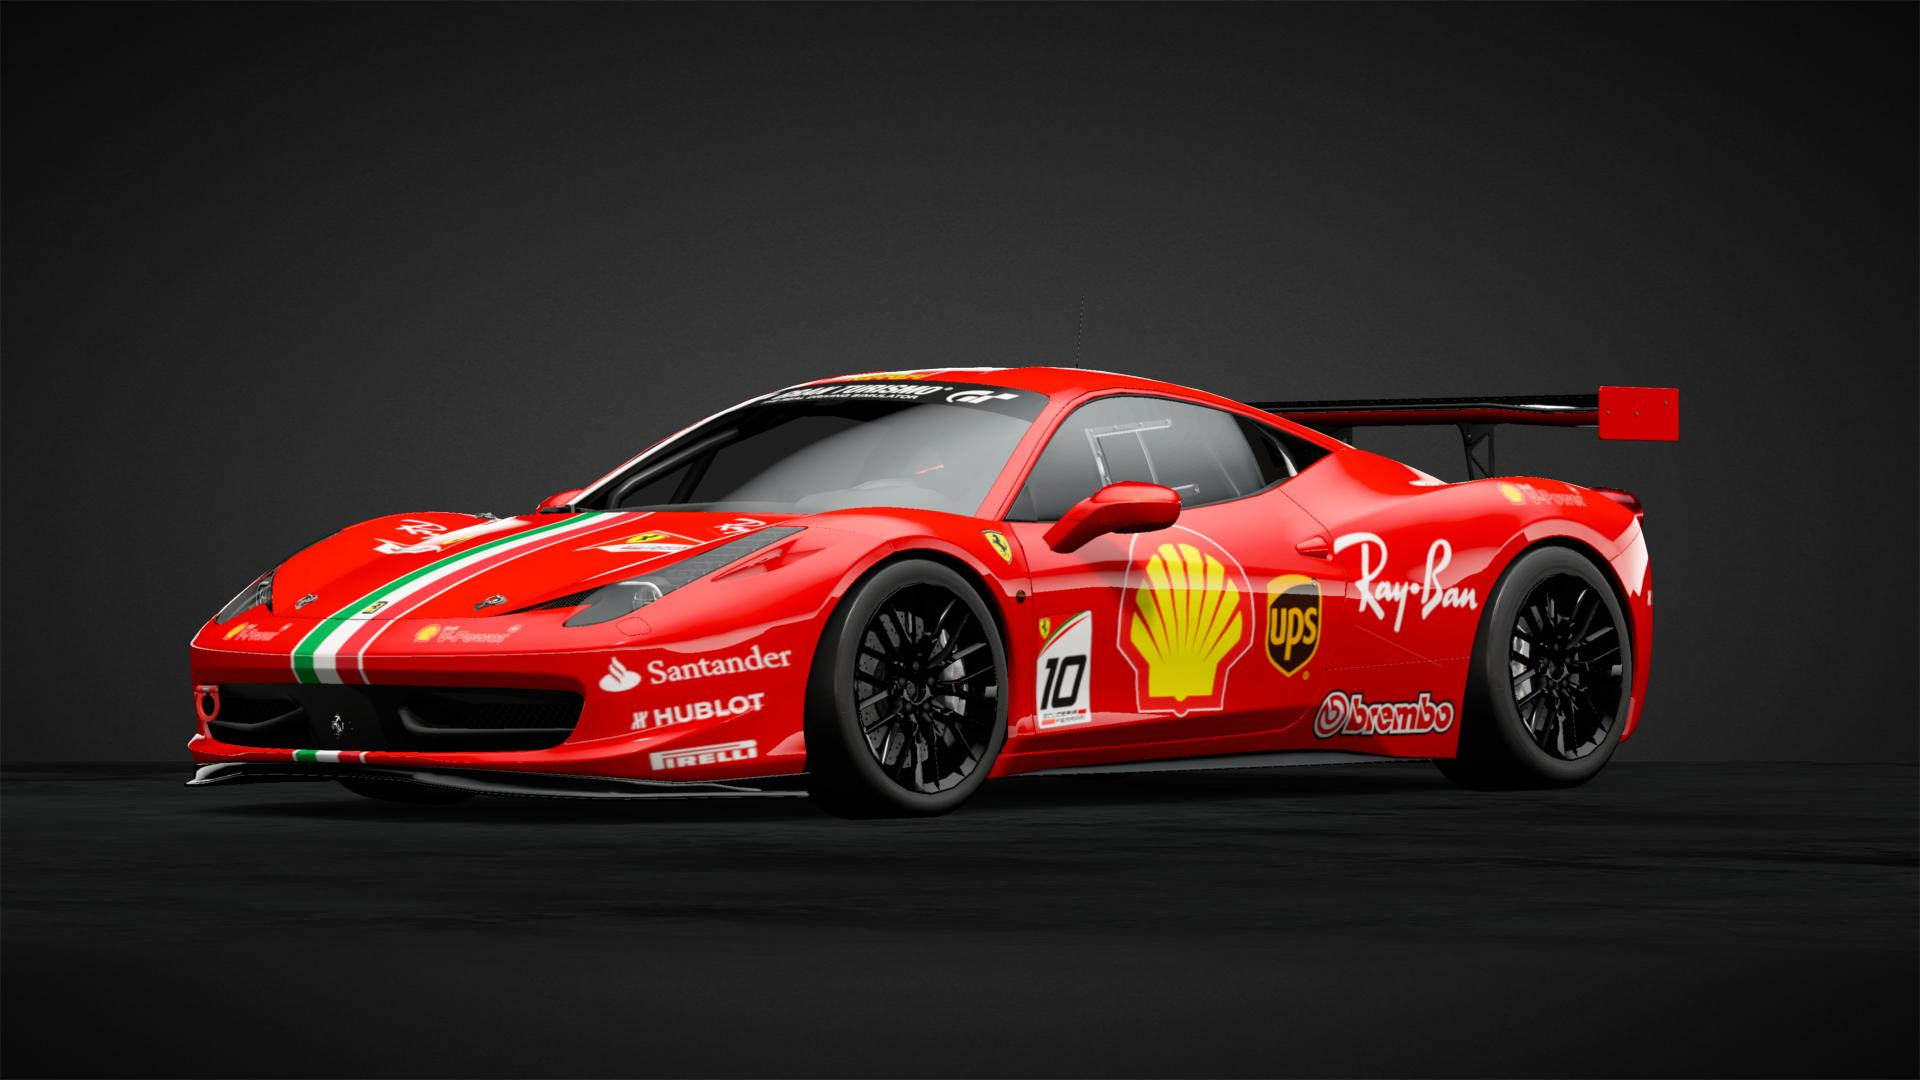 458 Gt4 Scuderia Car Livery By Oo Madmax Oo Community Gran Turismo Sport